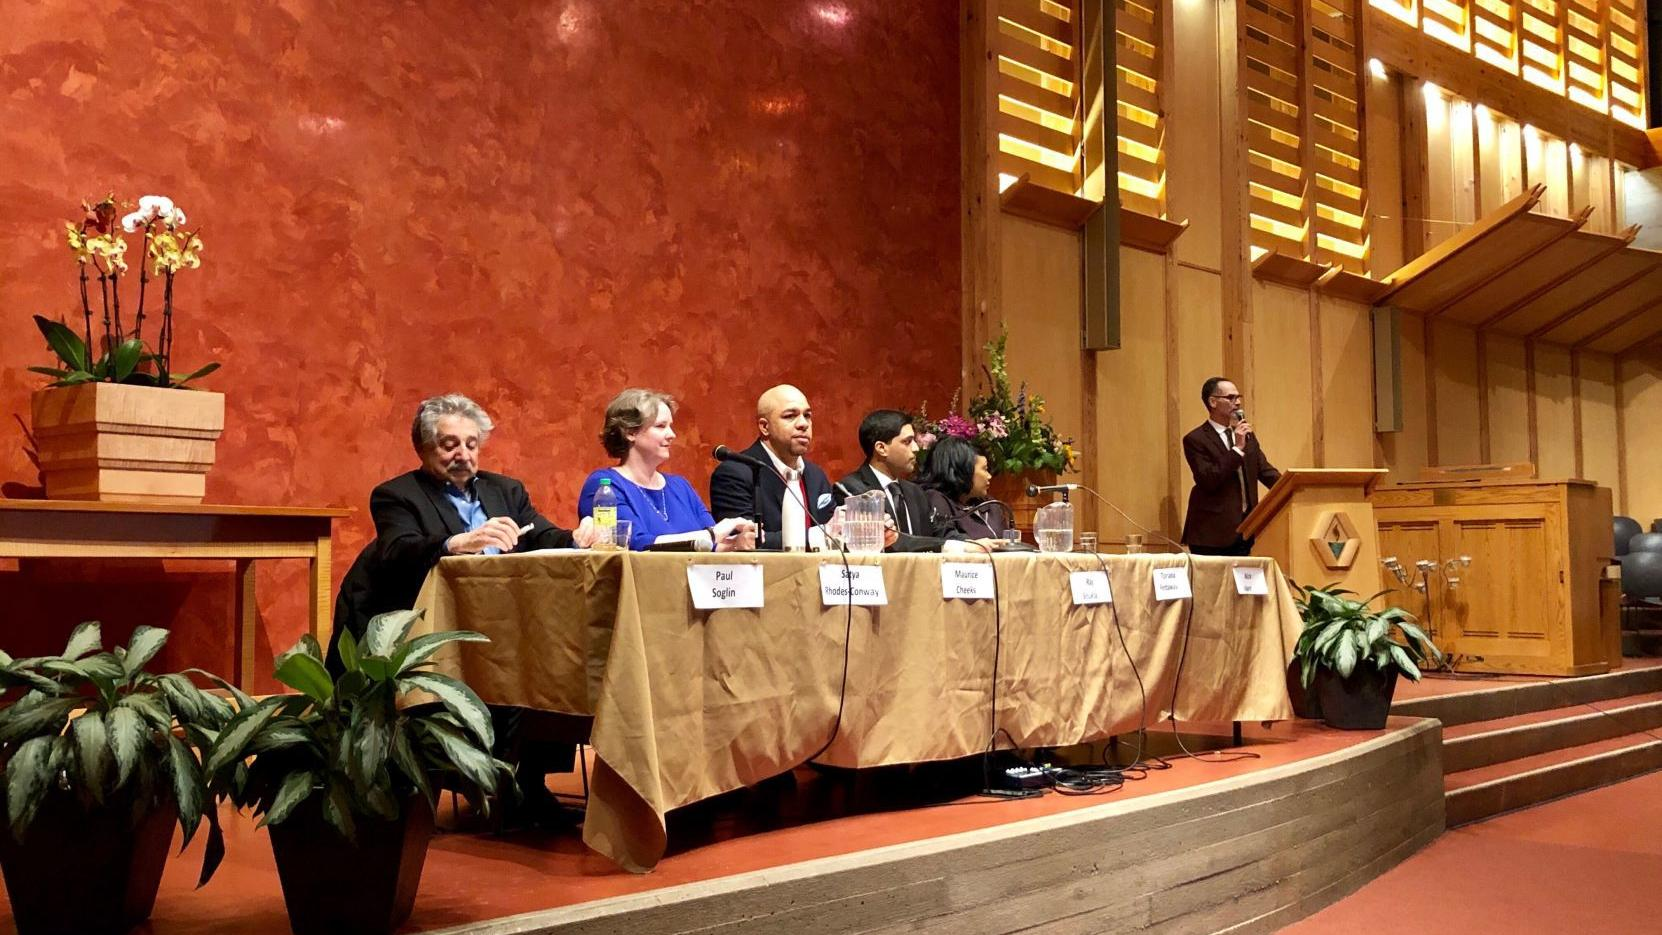 Madison mayor candidates offer vision for city ahead of primary election Tuesday